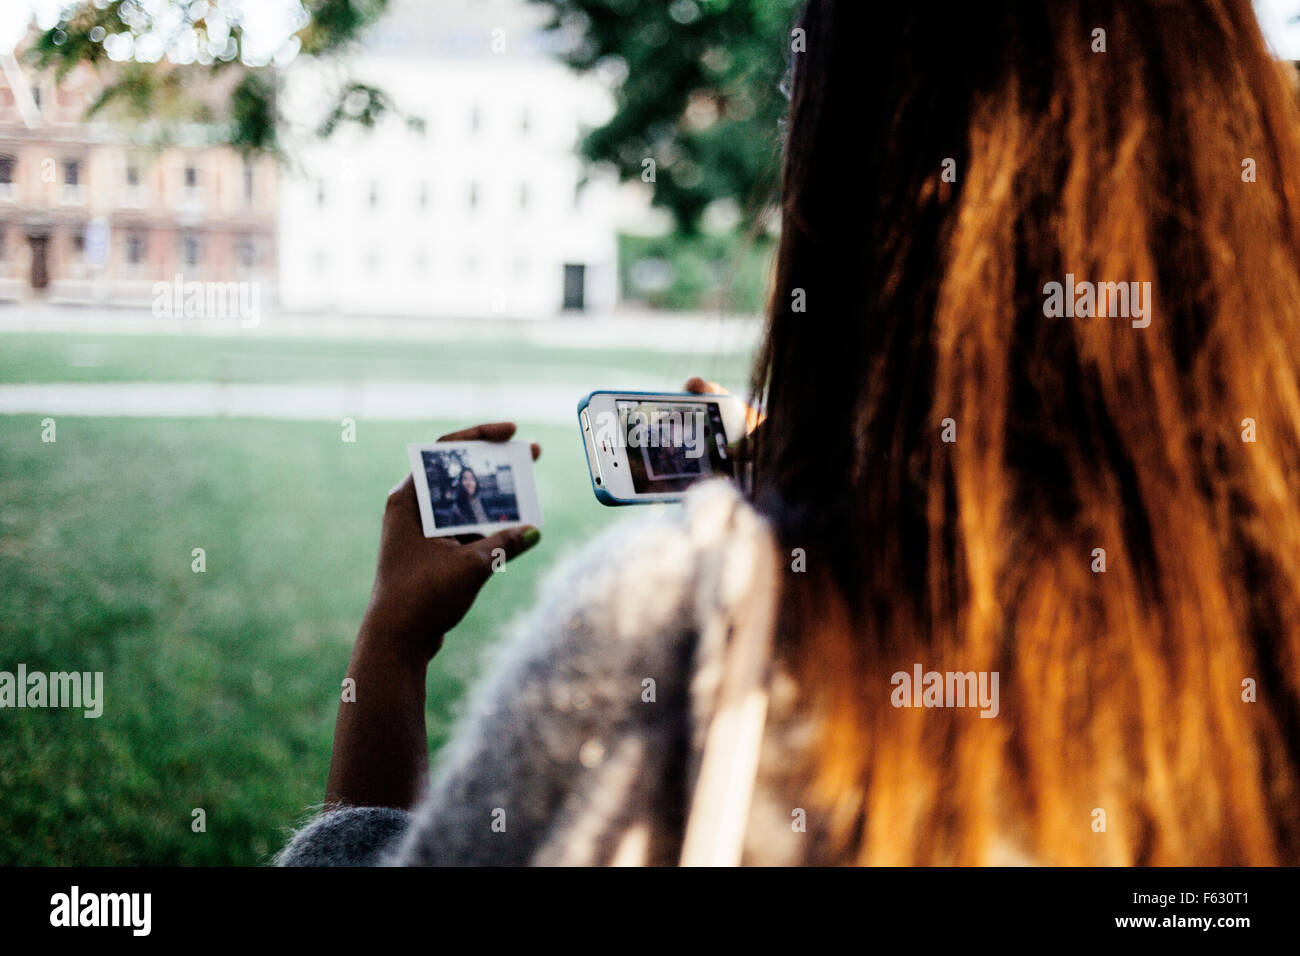 Rear view of woman taking photo of photograph with smart phone in park - Stock Image